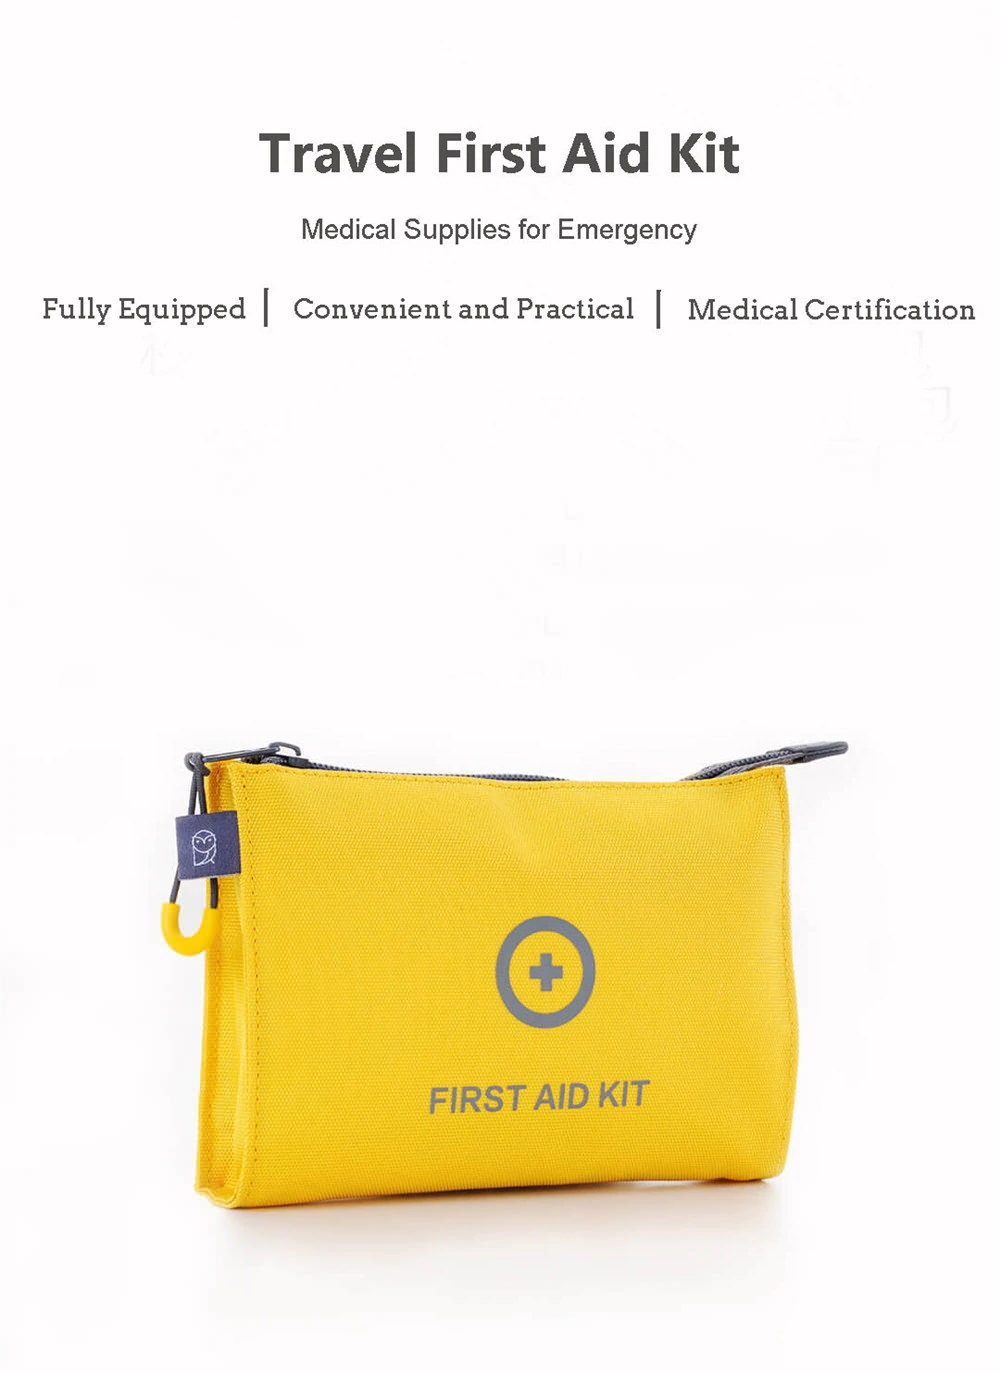 xiaomi mijia mini first aid kit